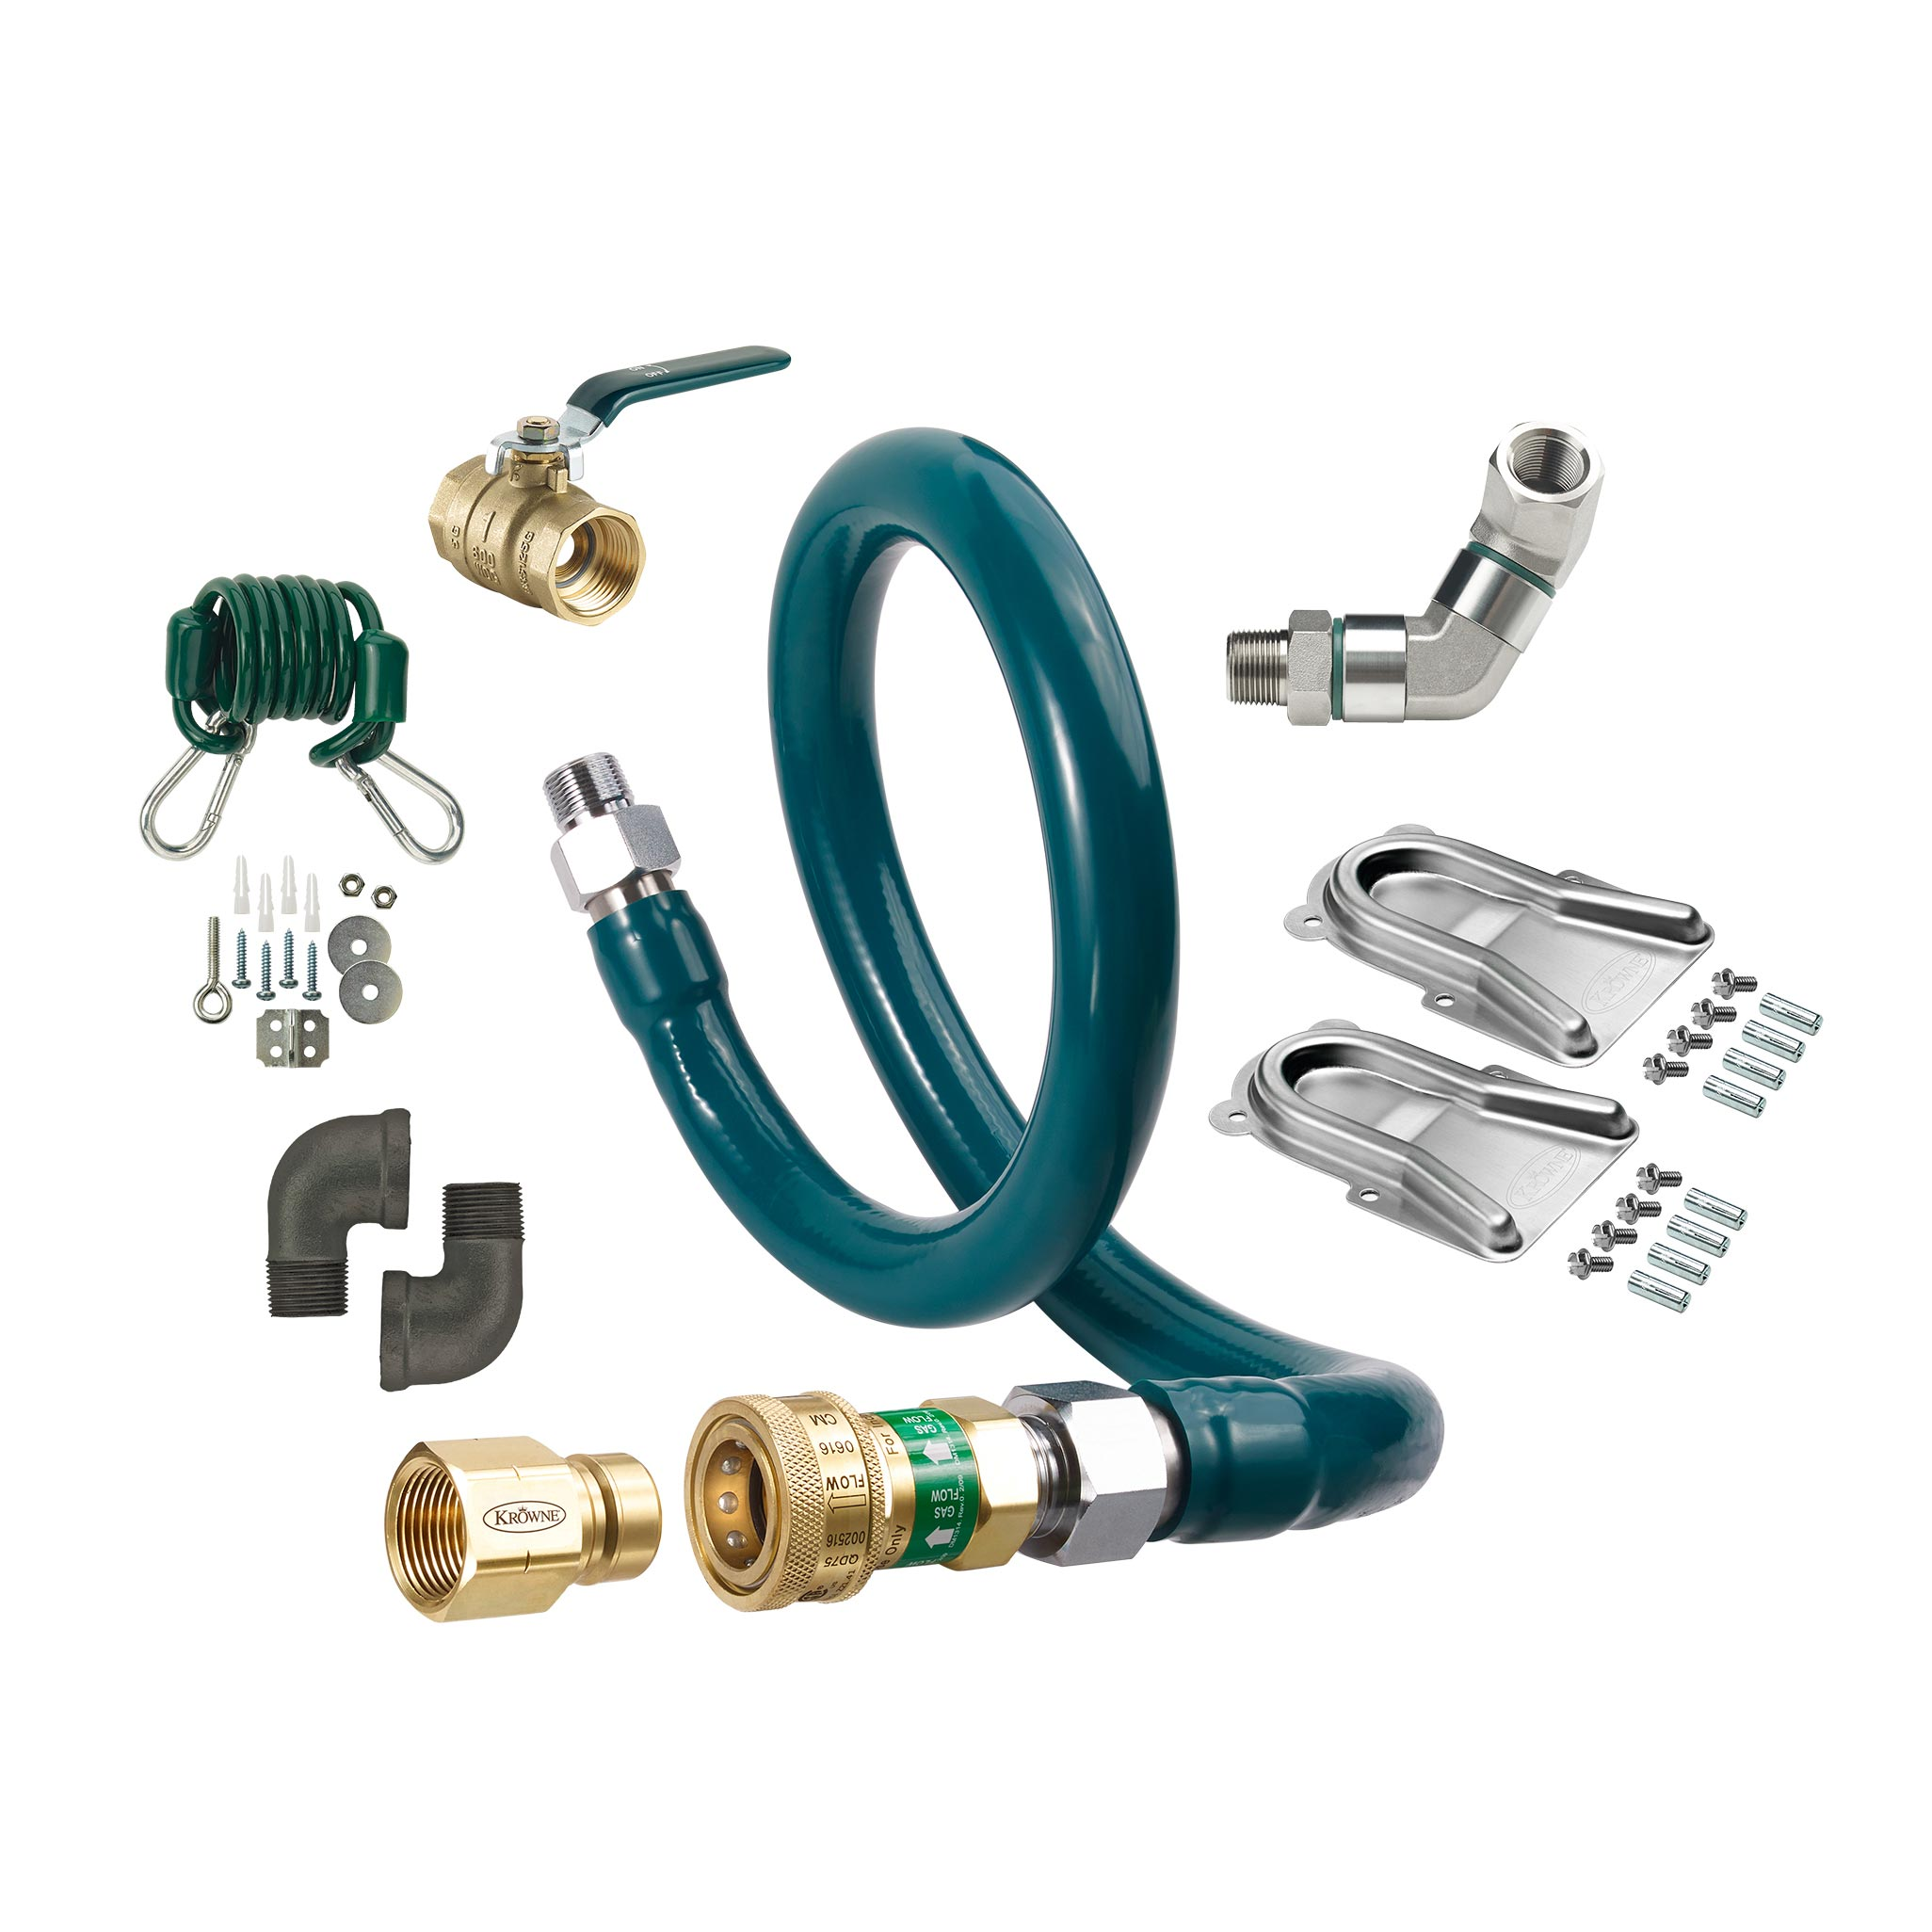 Krowne Metal M10024K11 gas connector hose kit